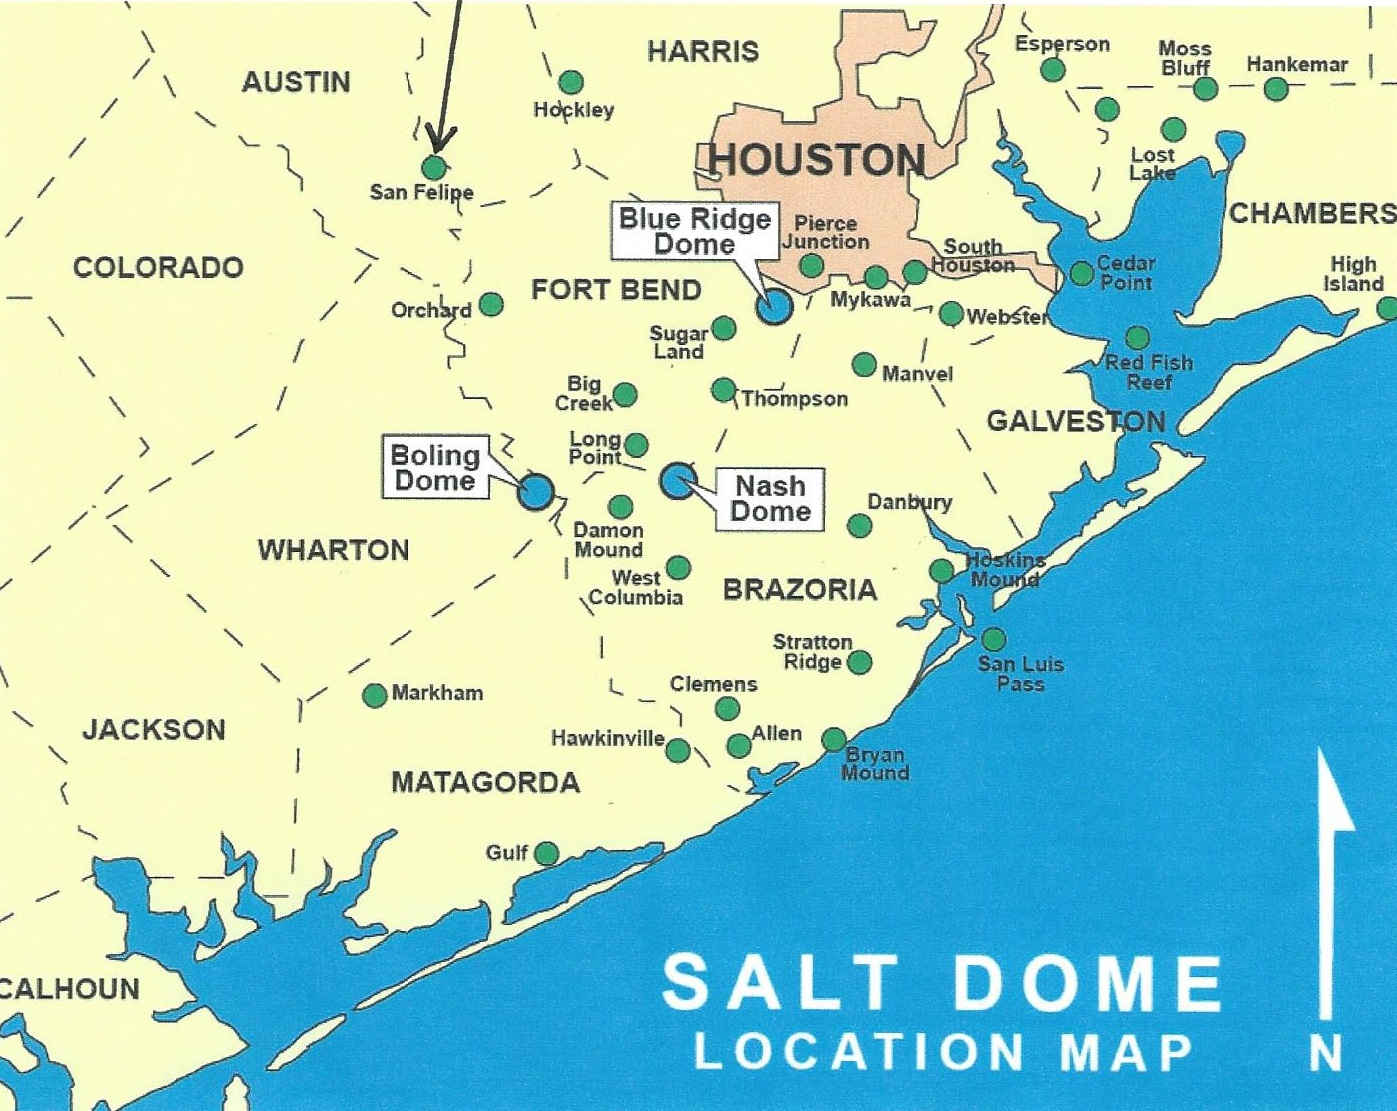 Texas Gulf Coast Map And Travel Information | Download Free Texas - Texas Saltwater Fishing Maps